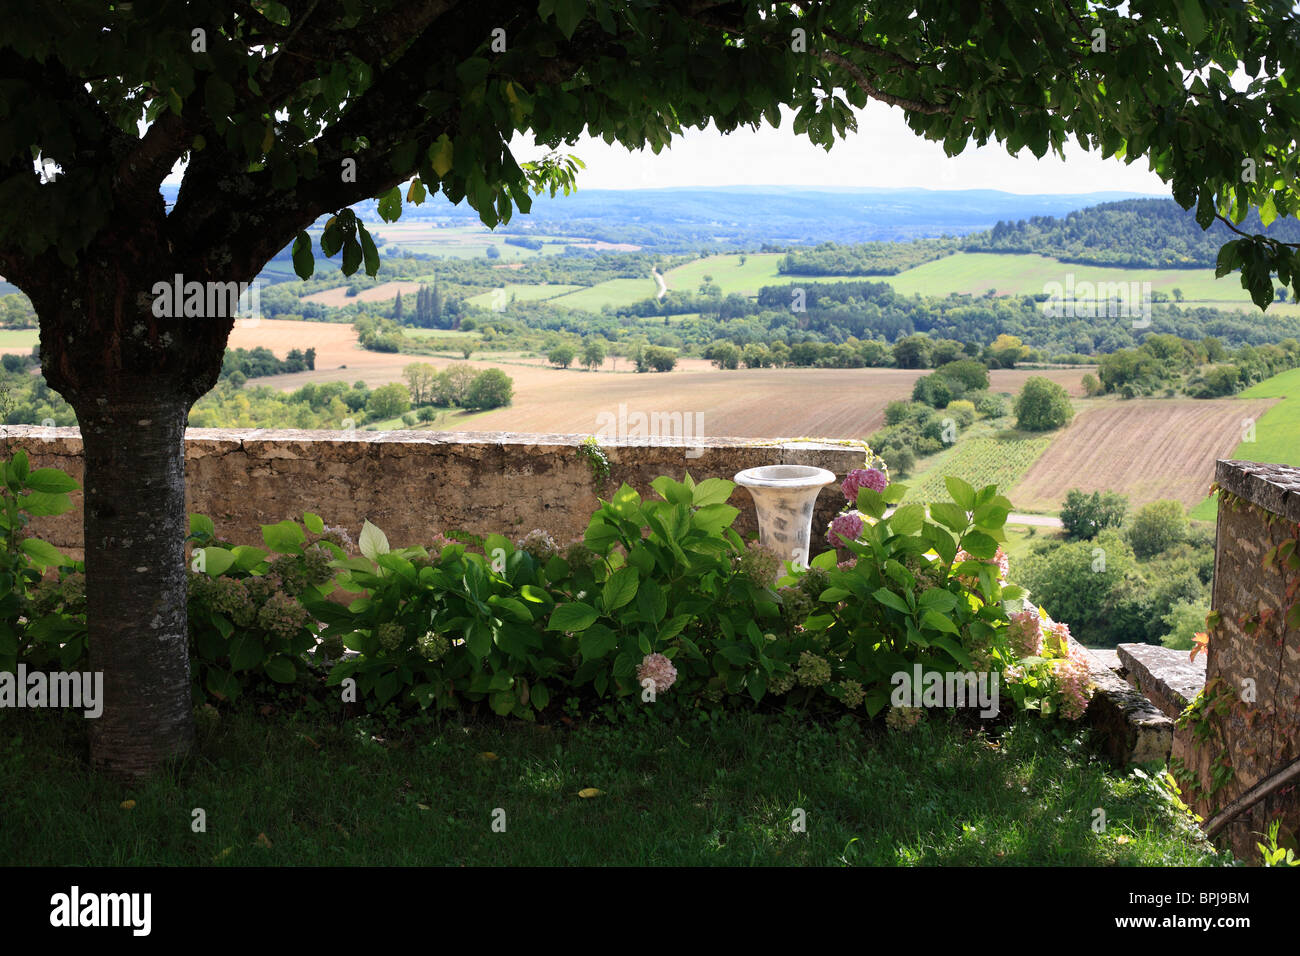 A Terrace in the French Village of Vezelay with a view over the Morvan Regional Park. - Stock Image